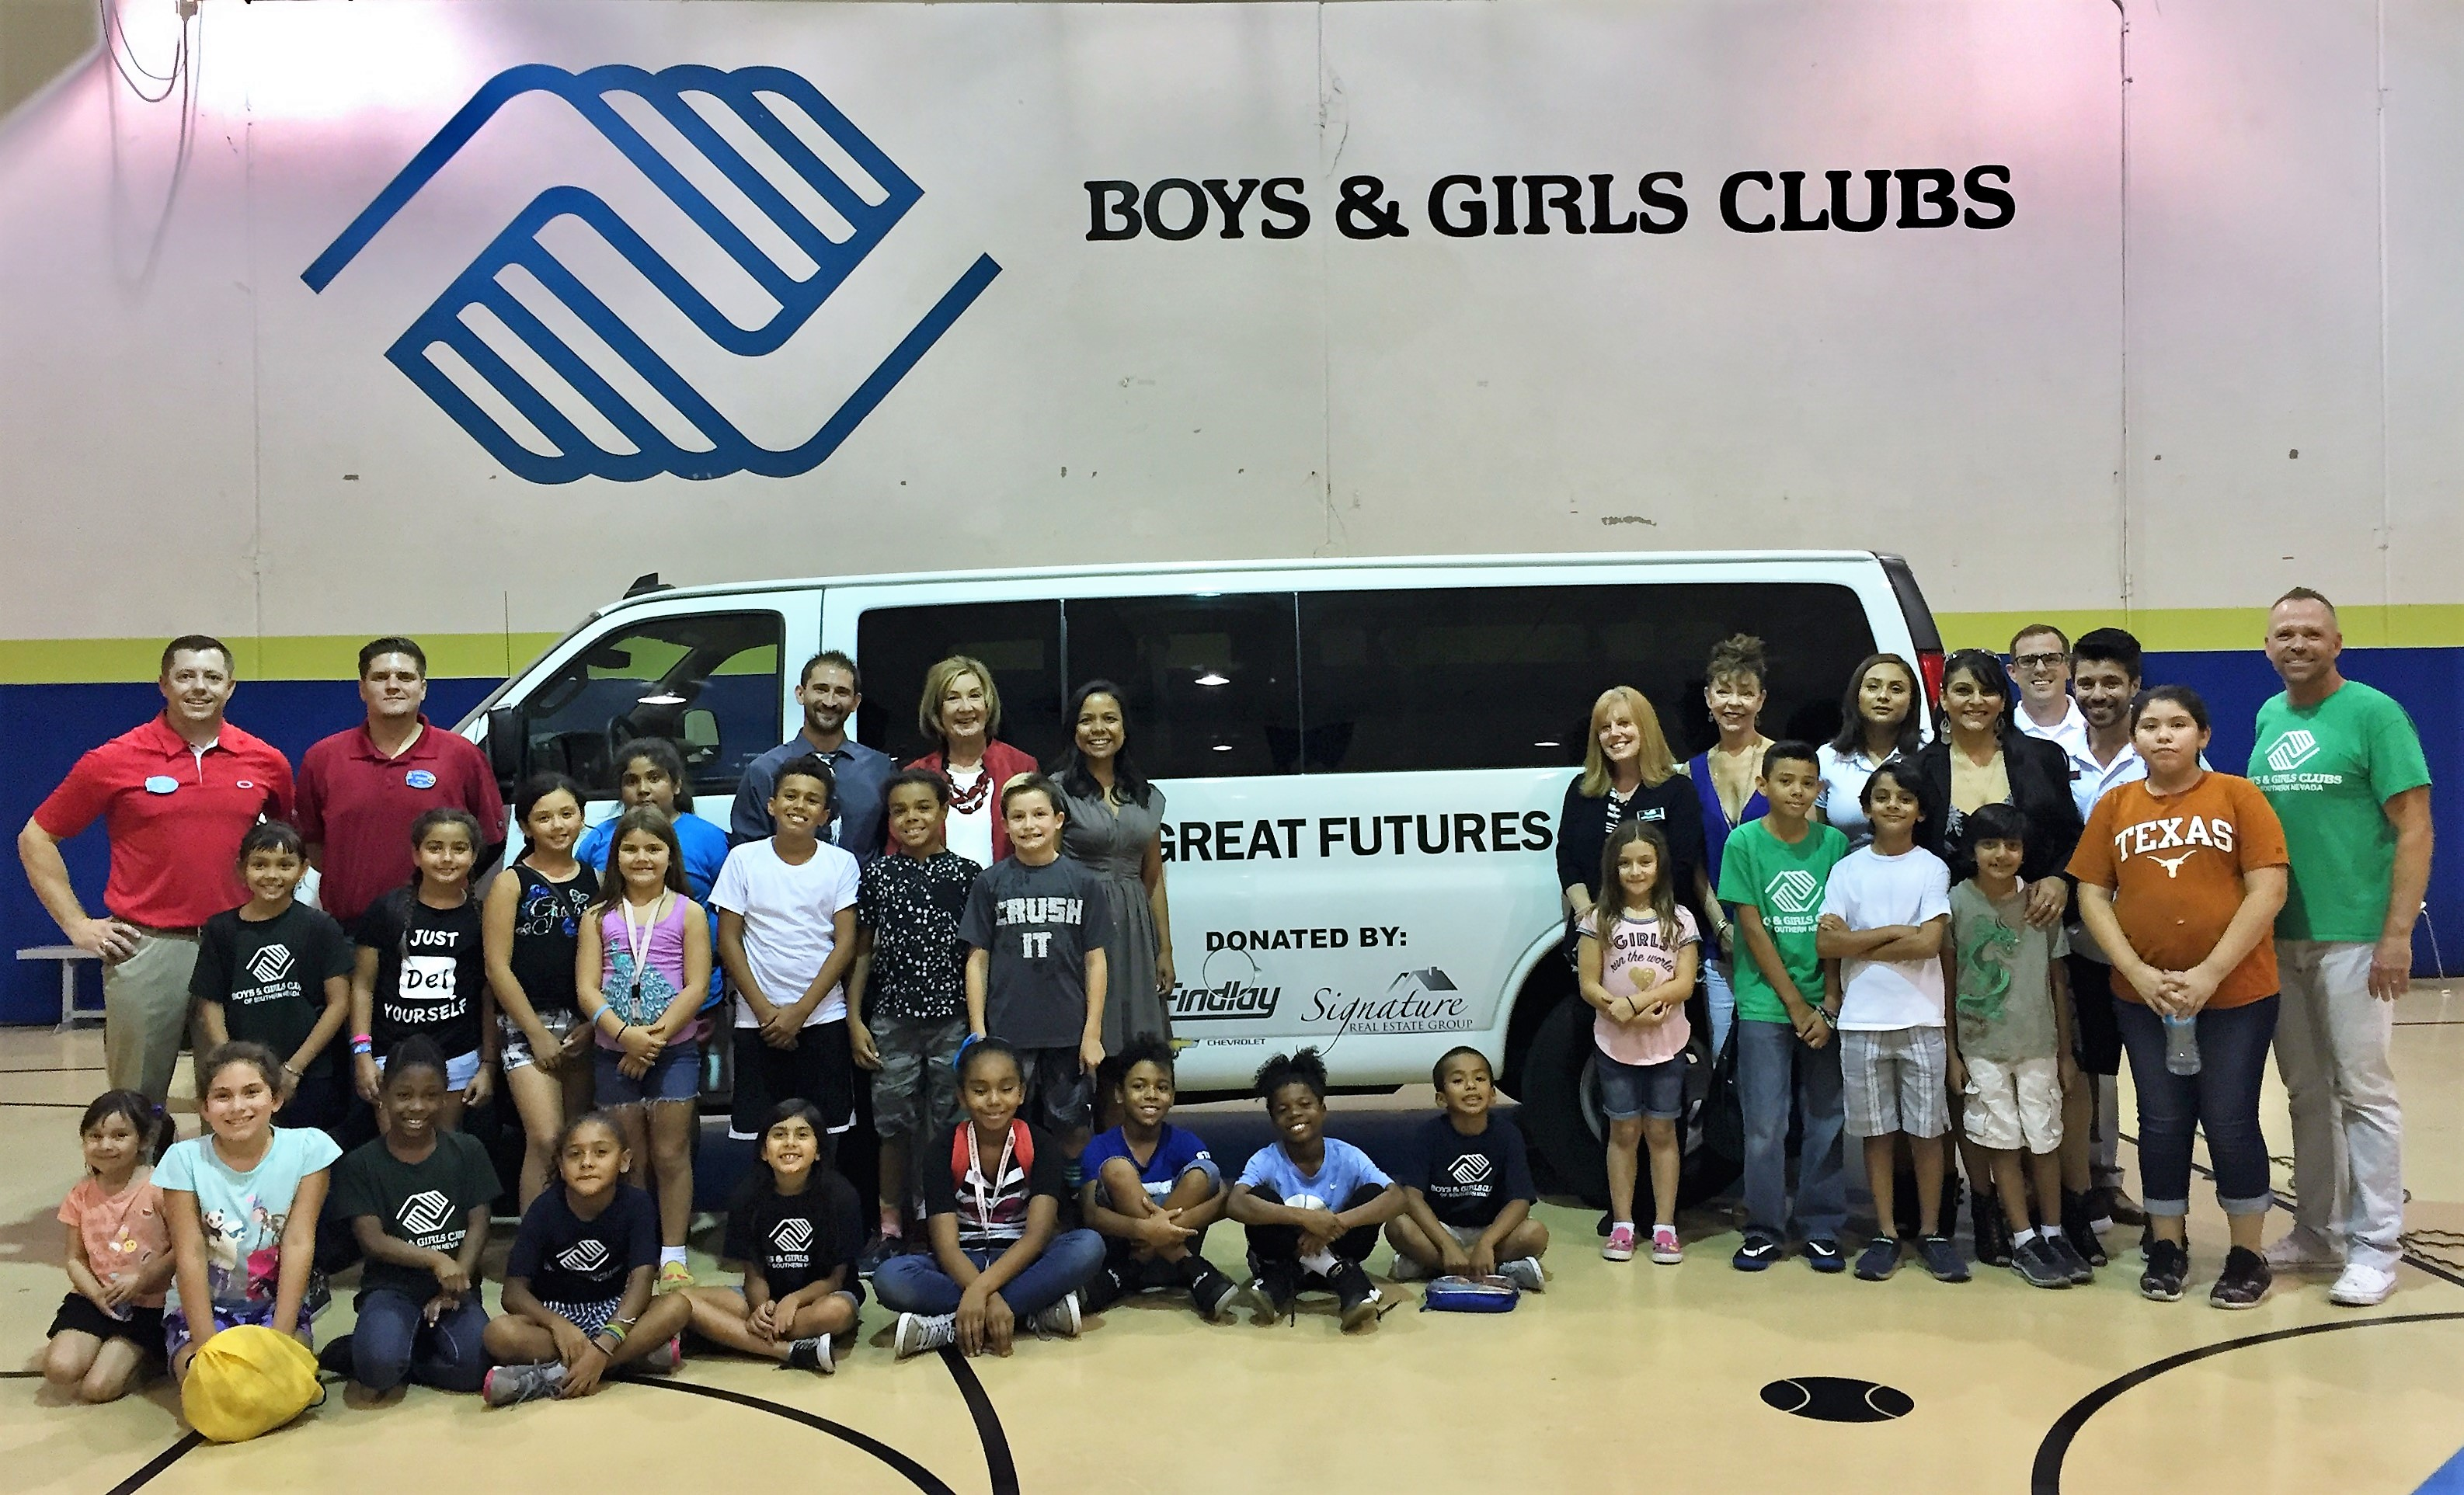 ... Forces Recently To Help Provide Backpacks And School Supplies To  Underserved Youth; And The Donation Also Included A 2016 15 Passenger  Chevrolet Van.